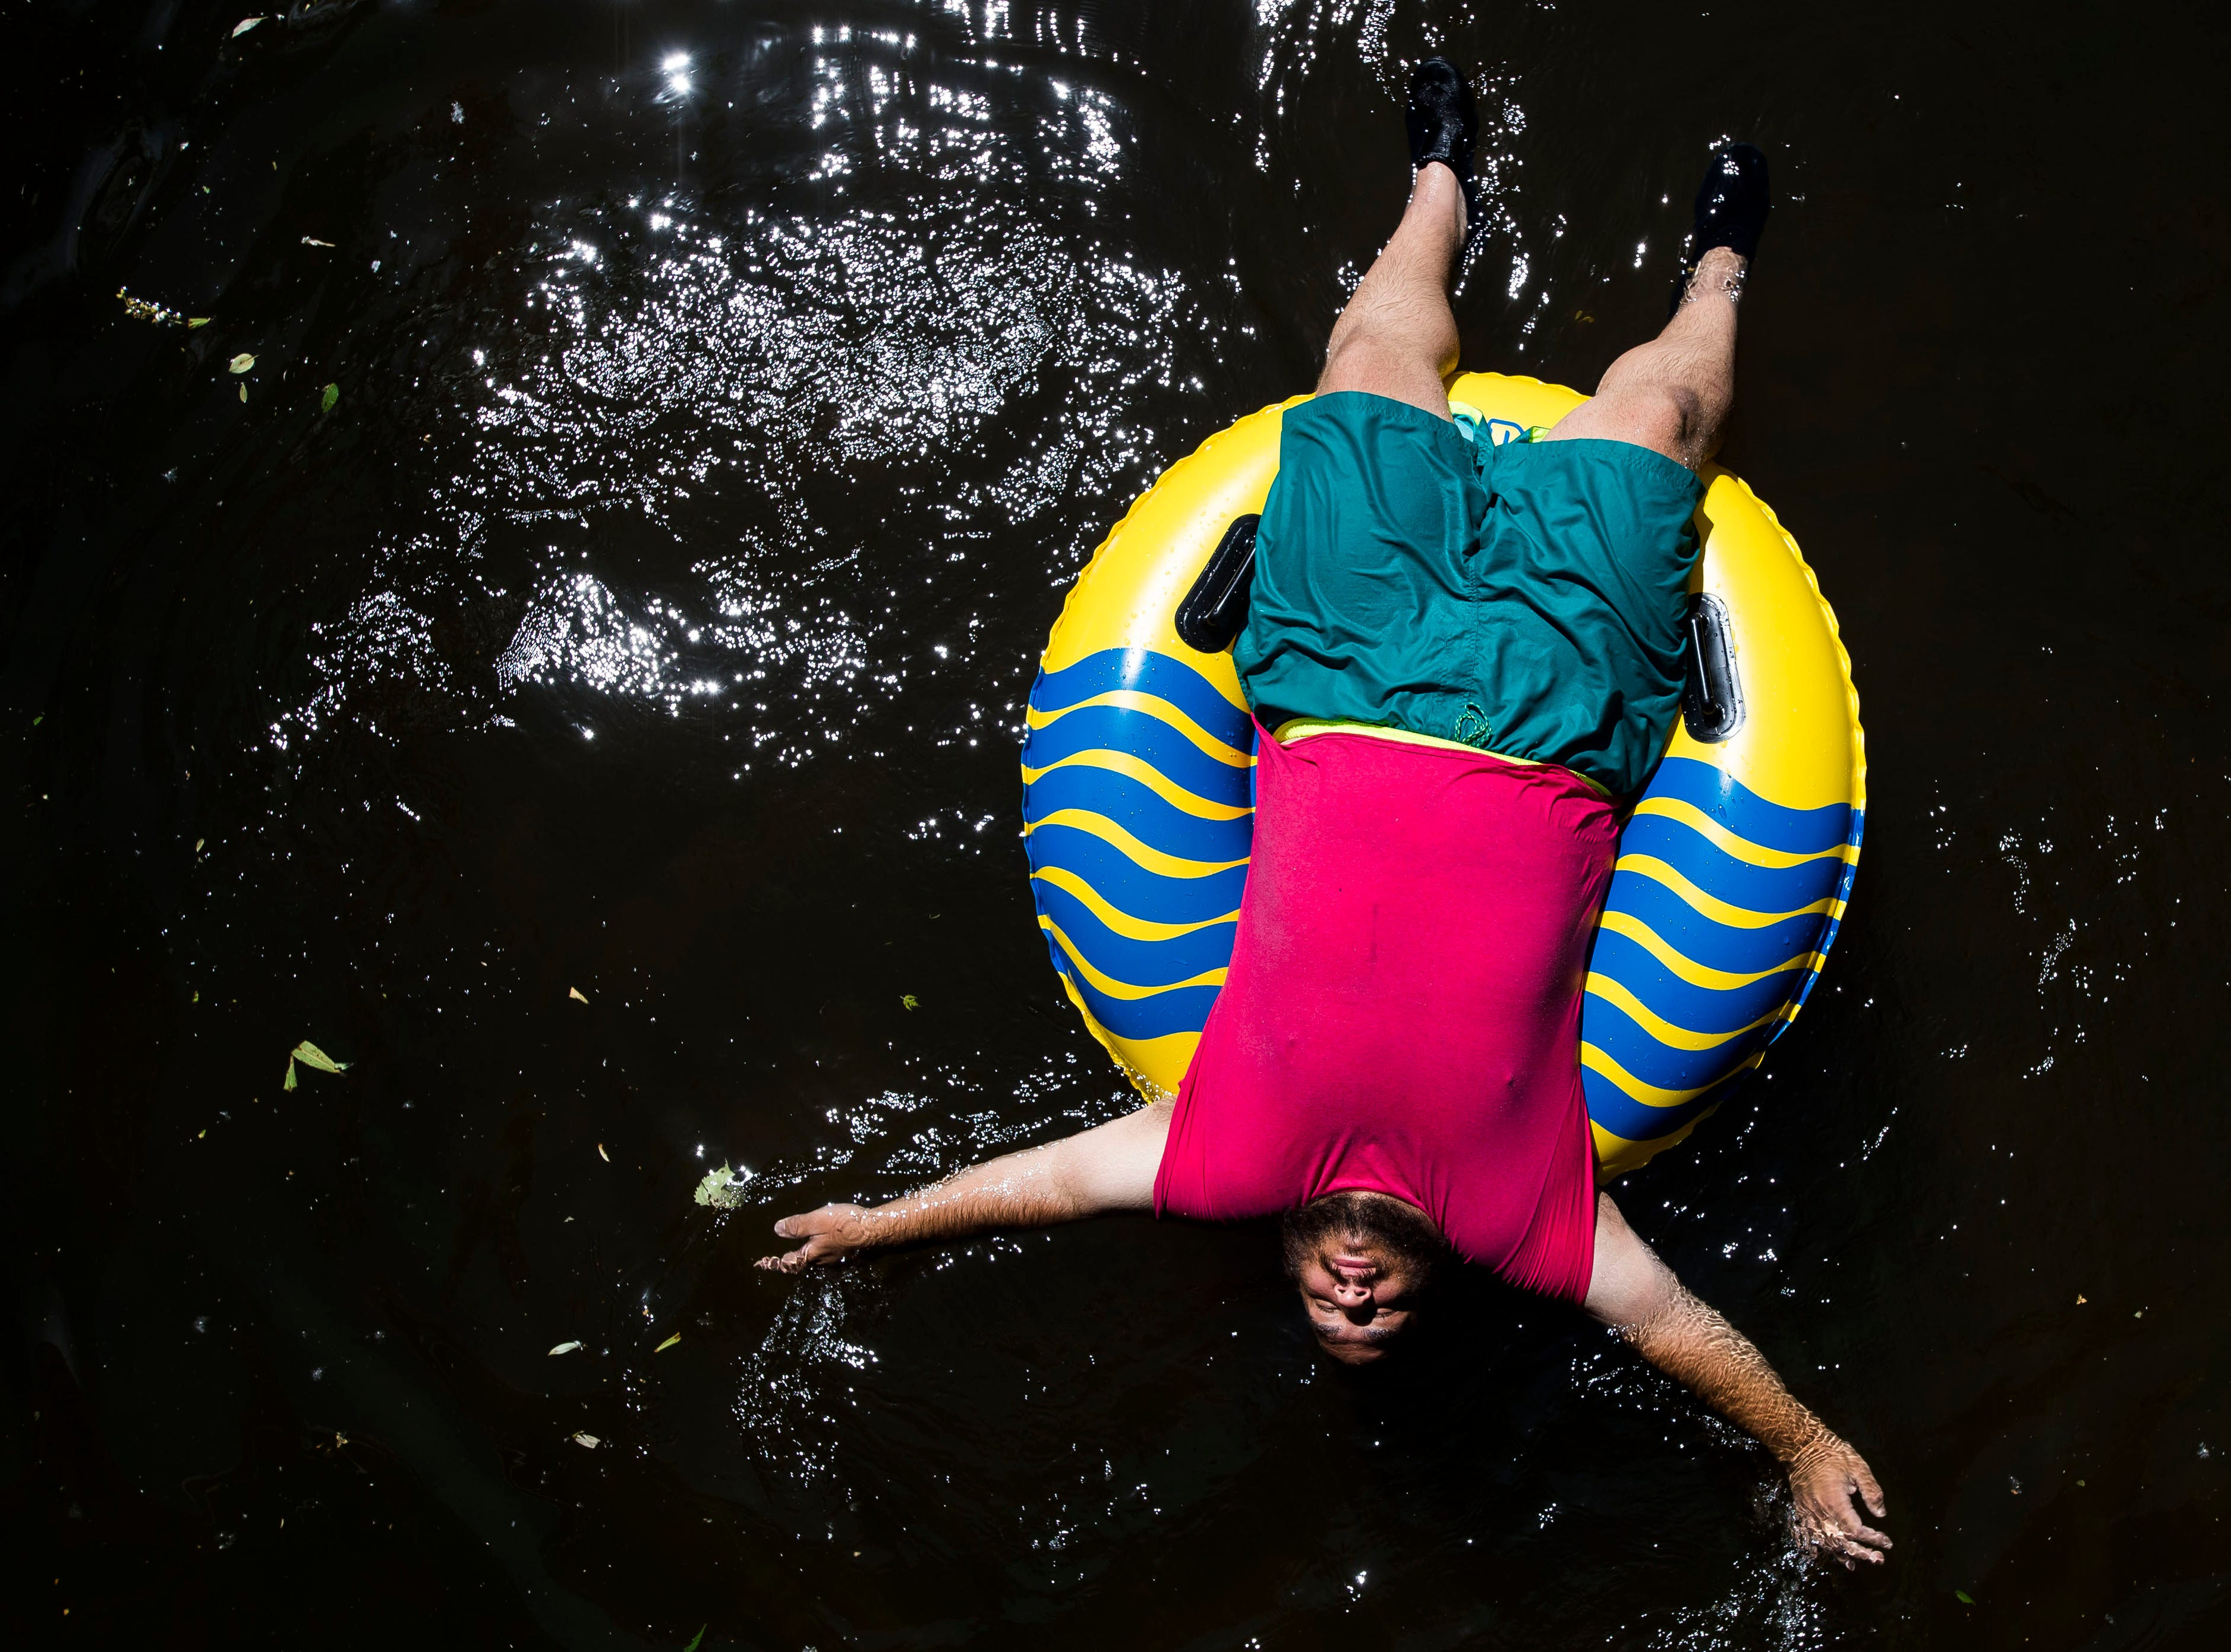 Antonio Diaz casually floats down the Cache La Poudre river on an innertube to stay cool on an especially hot summer day on Thursday, June 28, 2018, in Fort Collins, Colo. The high temperature for the day came in at 101 degree, breaking the previous record for June 28 of 97 degrees, set in 1898.